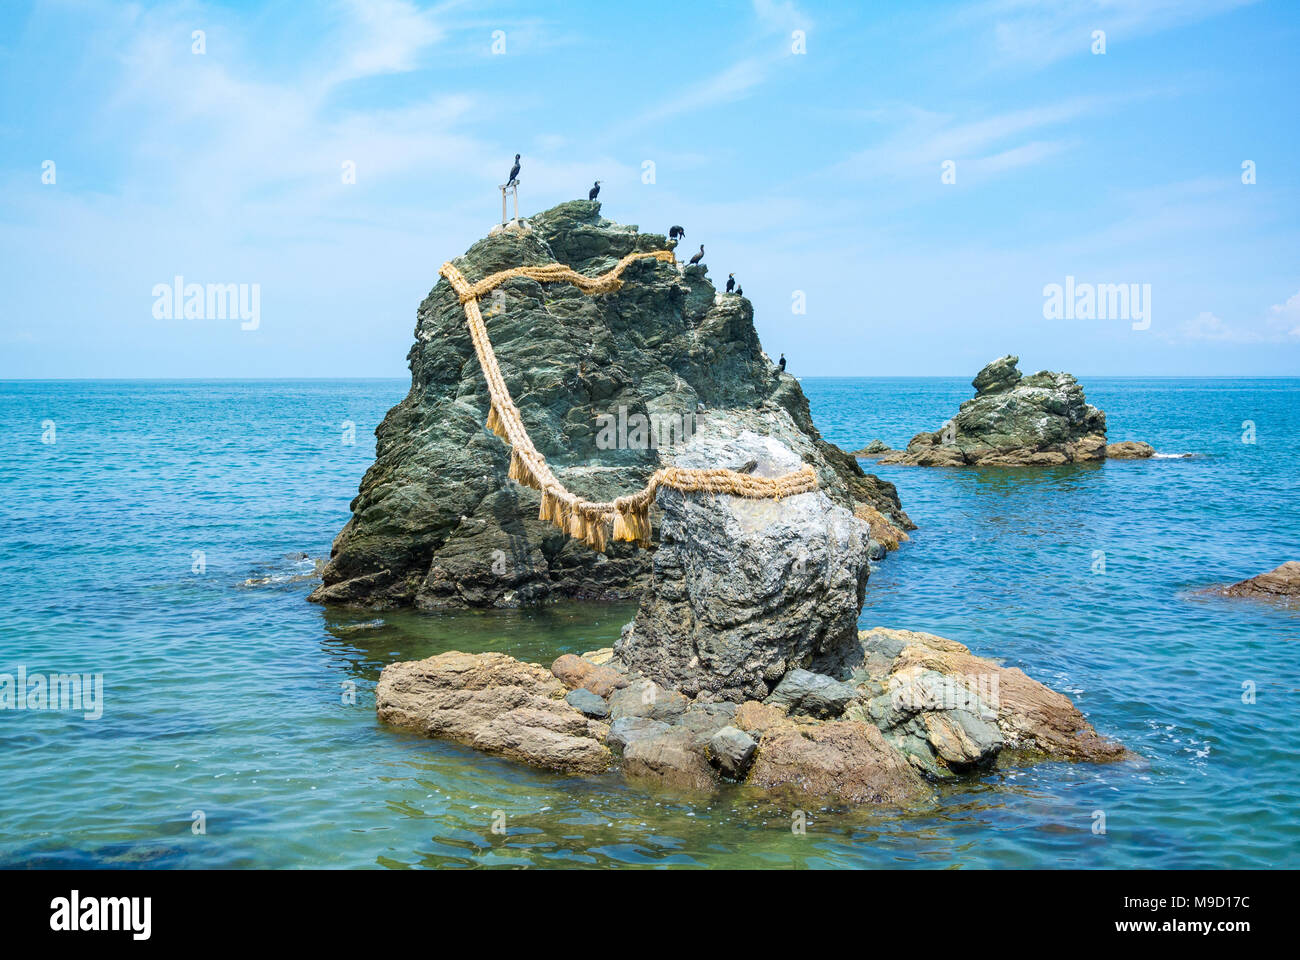 Meoto Iwa or the Loved one and loved one Rocks at Mie prefecture, Japan - Stock Image